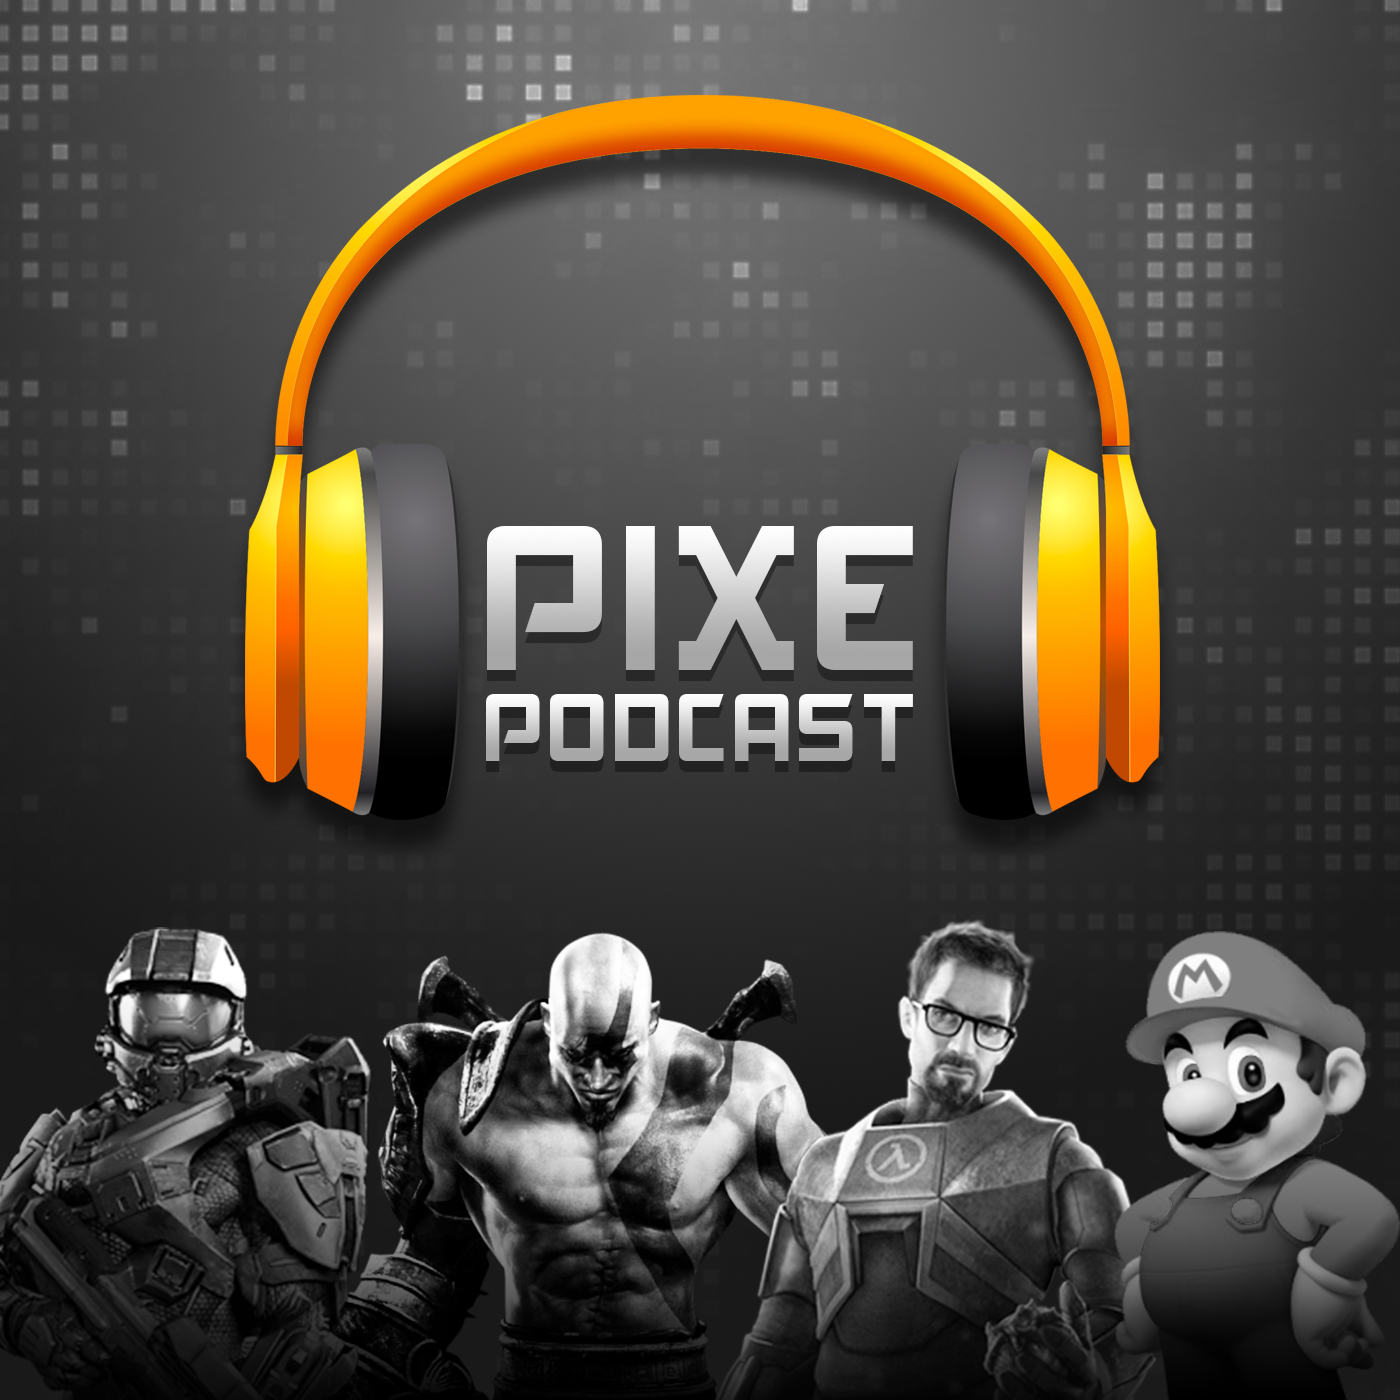 Pixelania Podcast